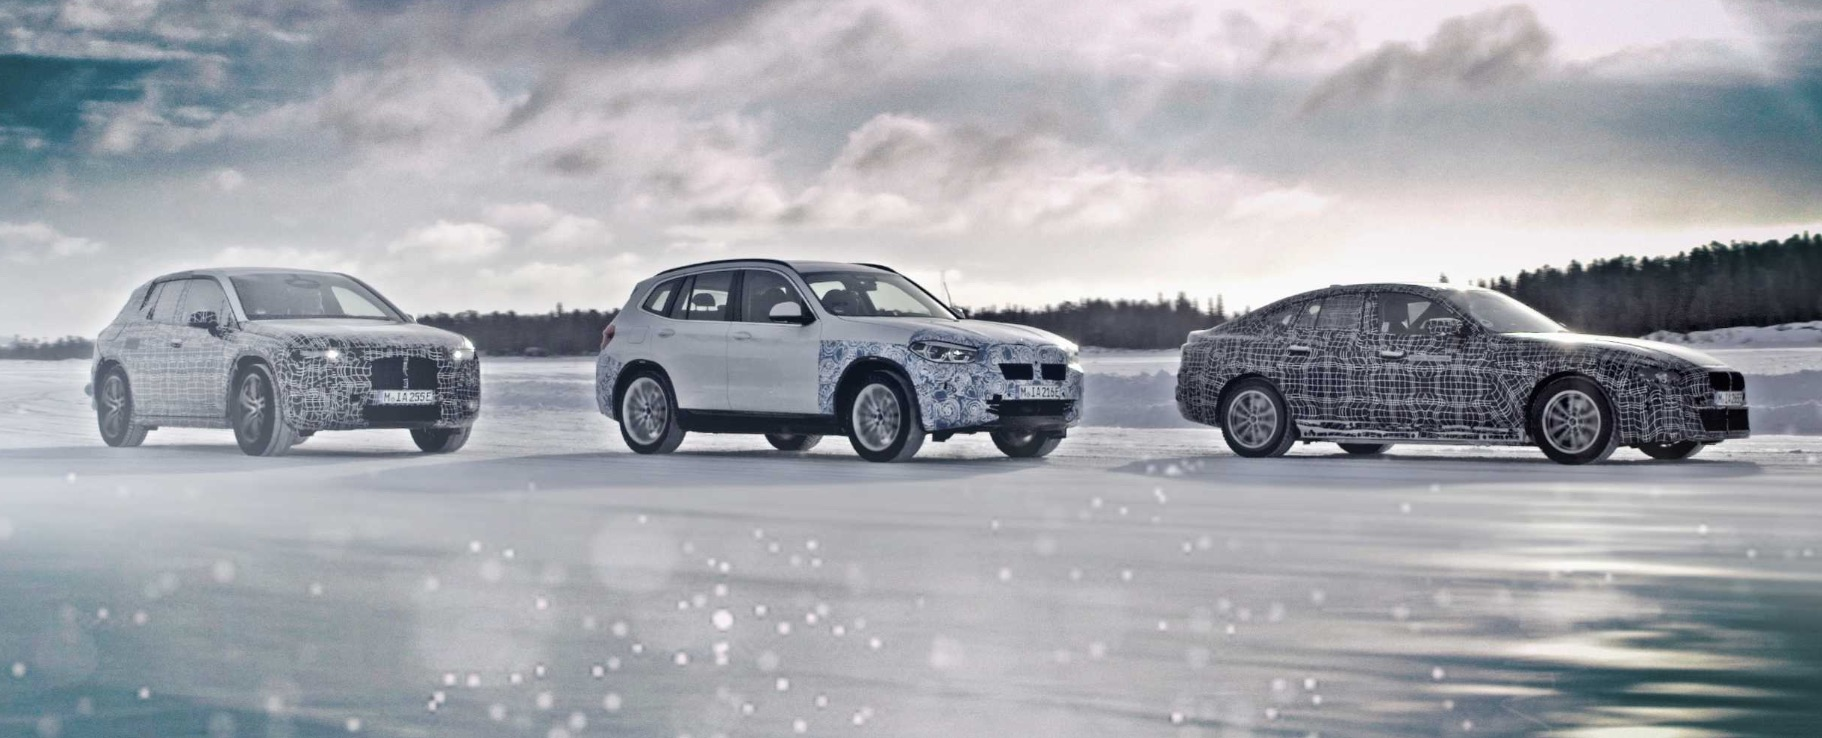 BMW reveals latest iX3, i4, and iNext electric vehicle prototypes in winter testing